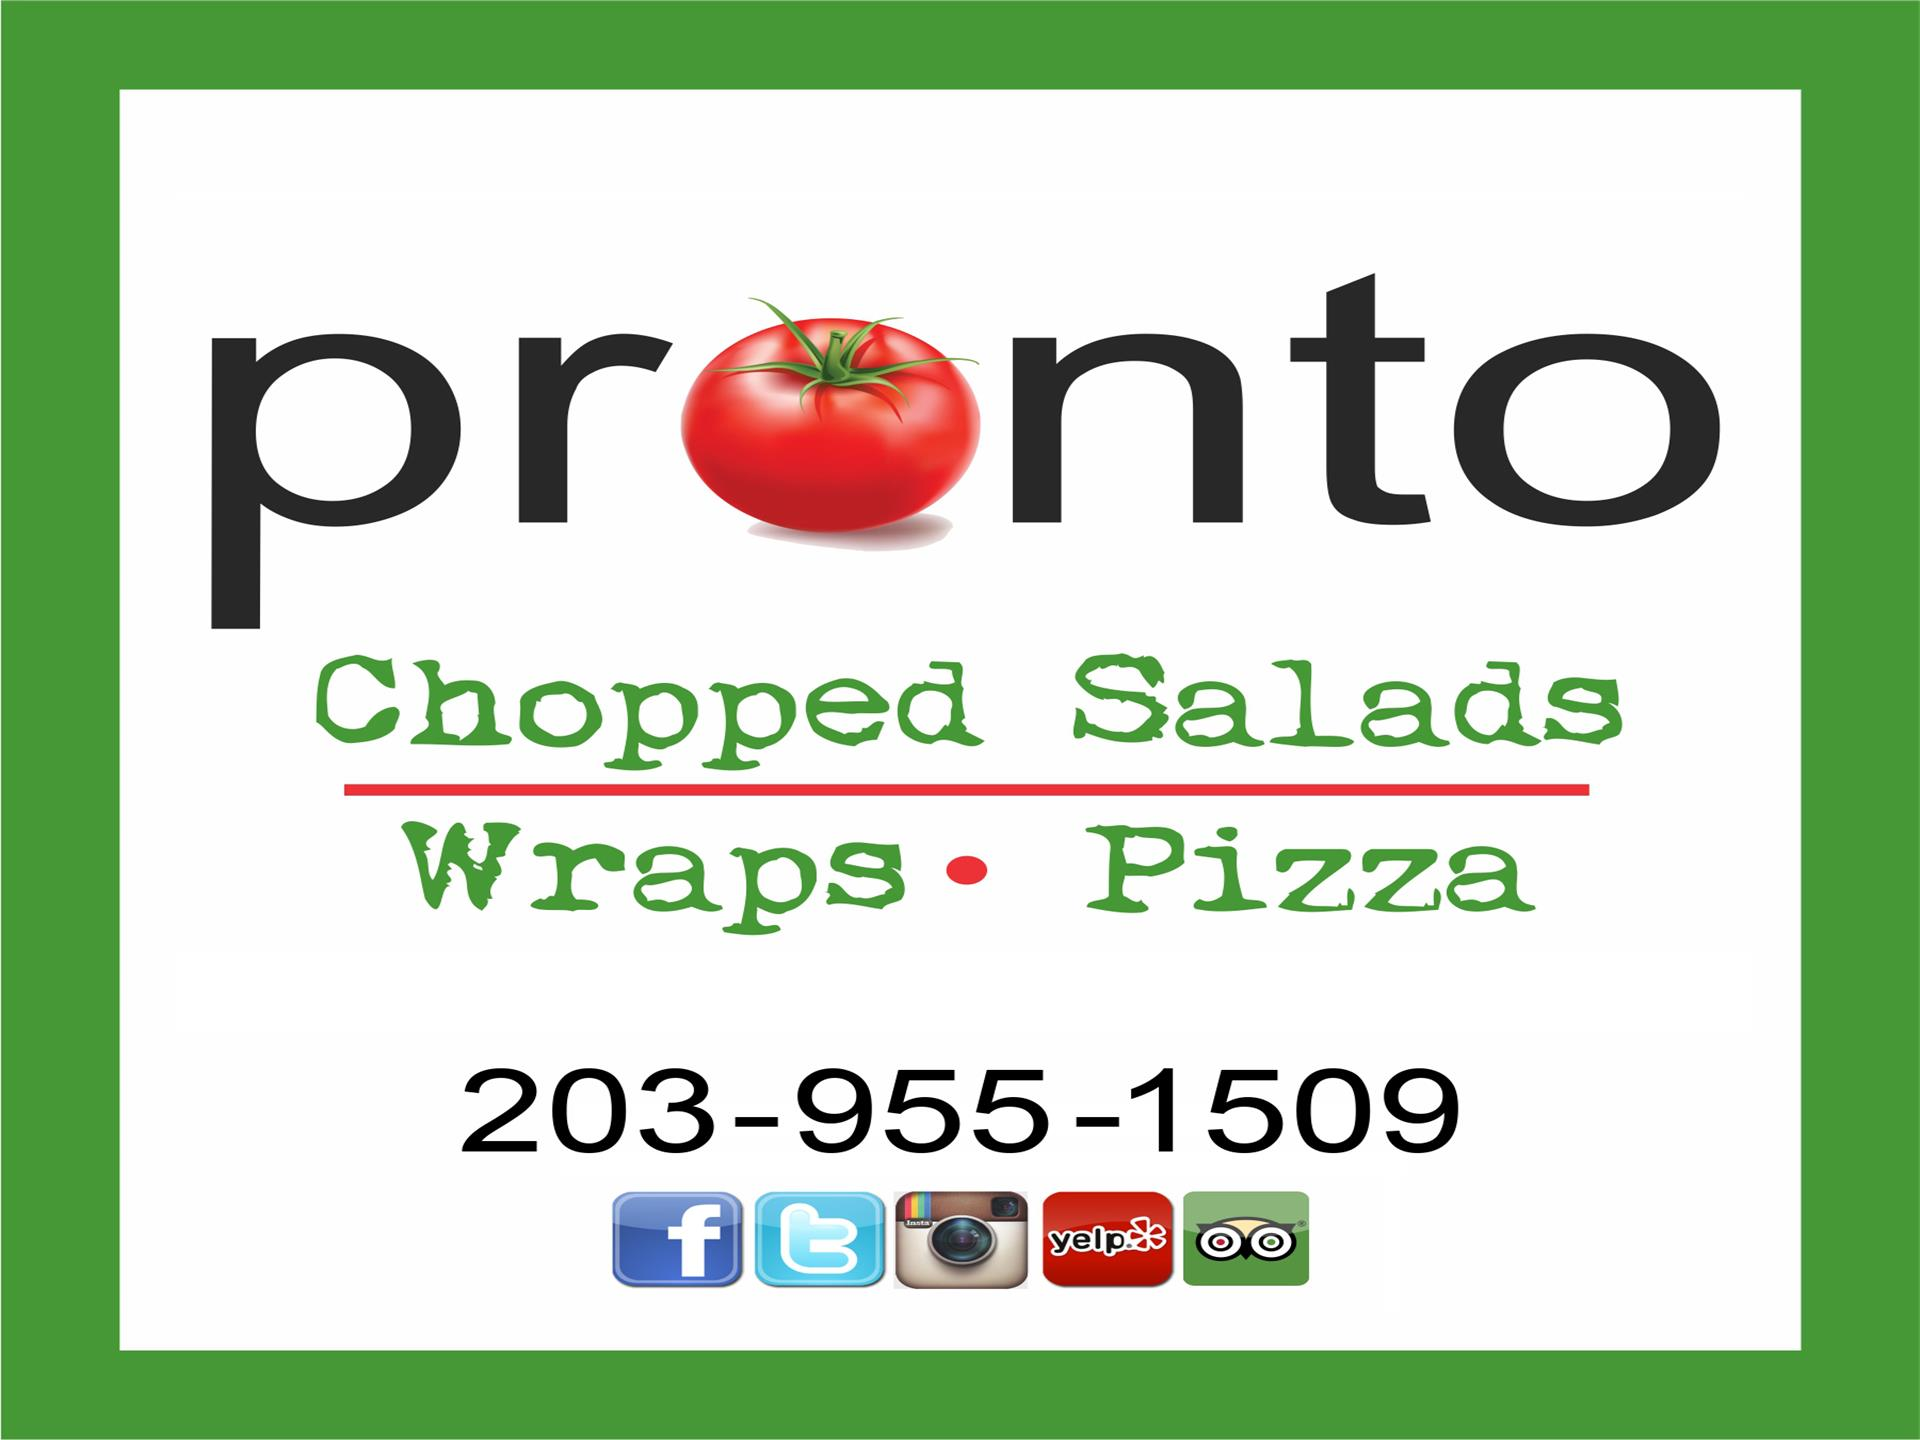 Pronto Logo with contact info